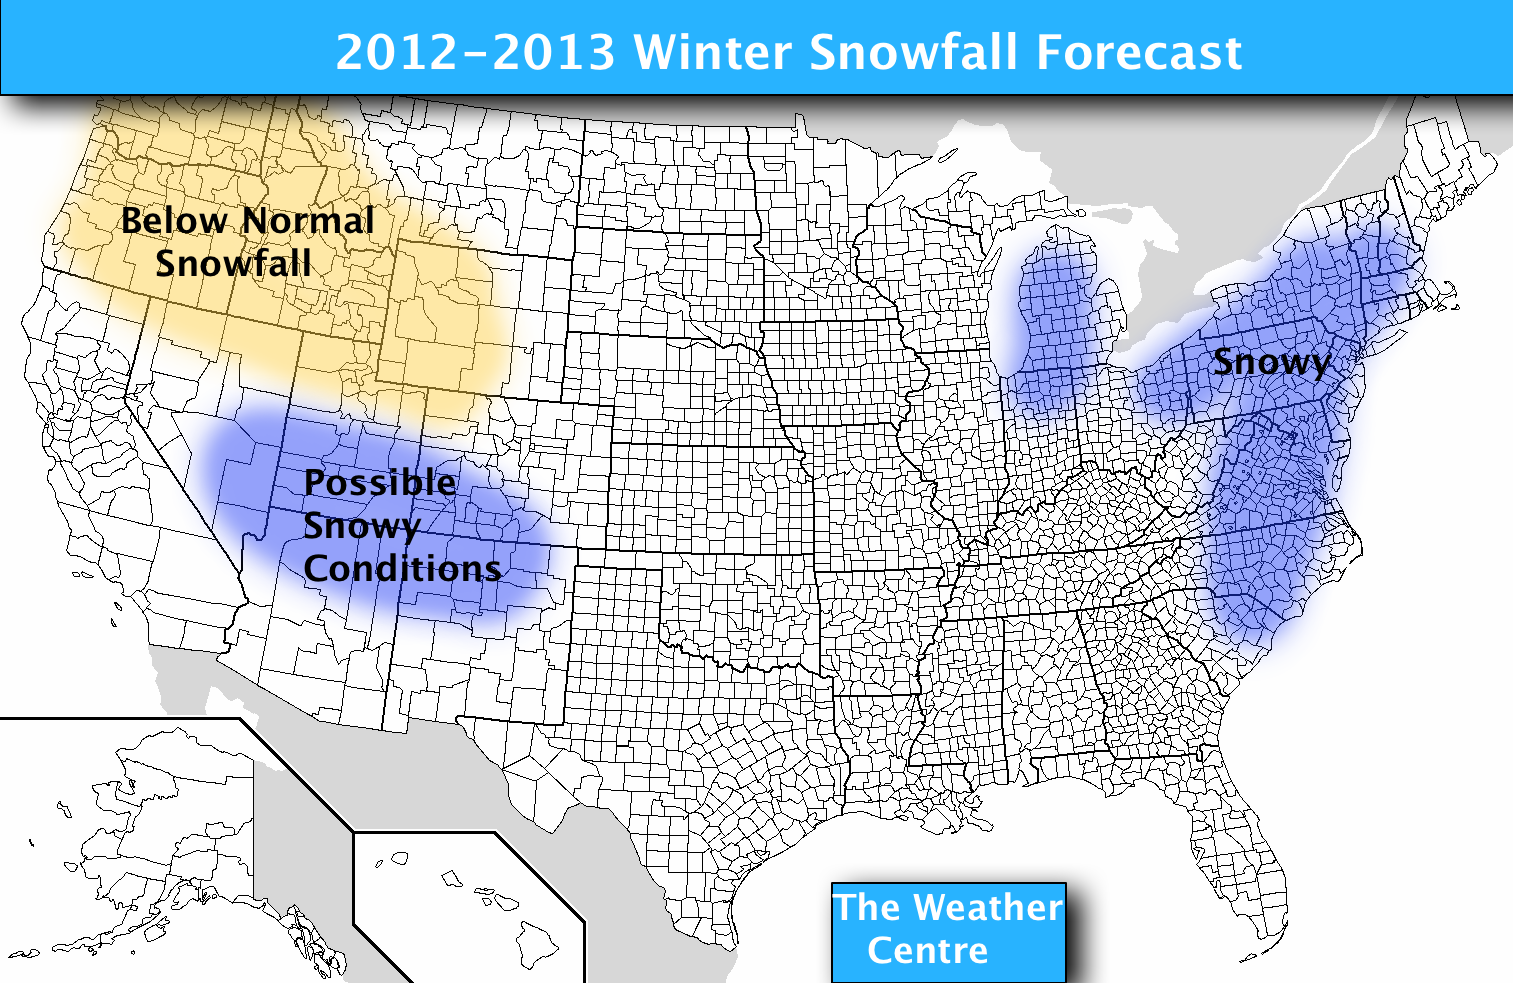 Today's Featured Post: April 14-15 Potentially Significant Snowstorm